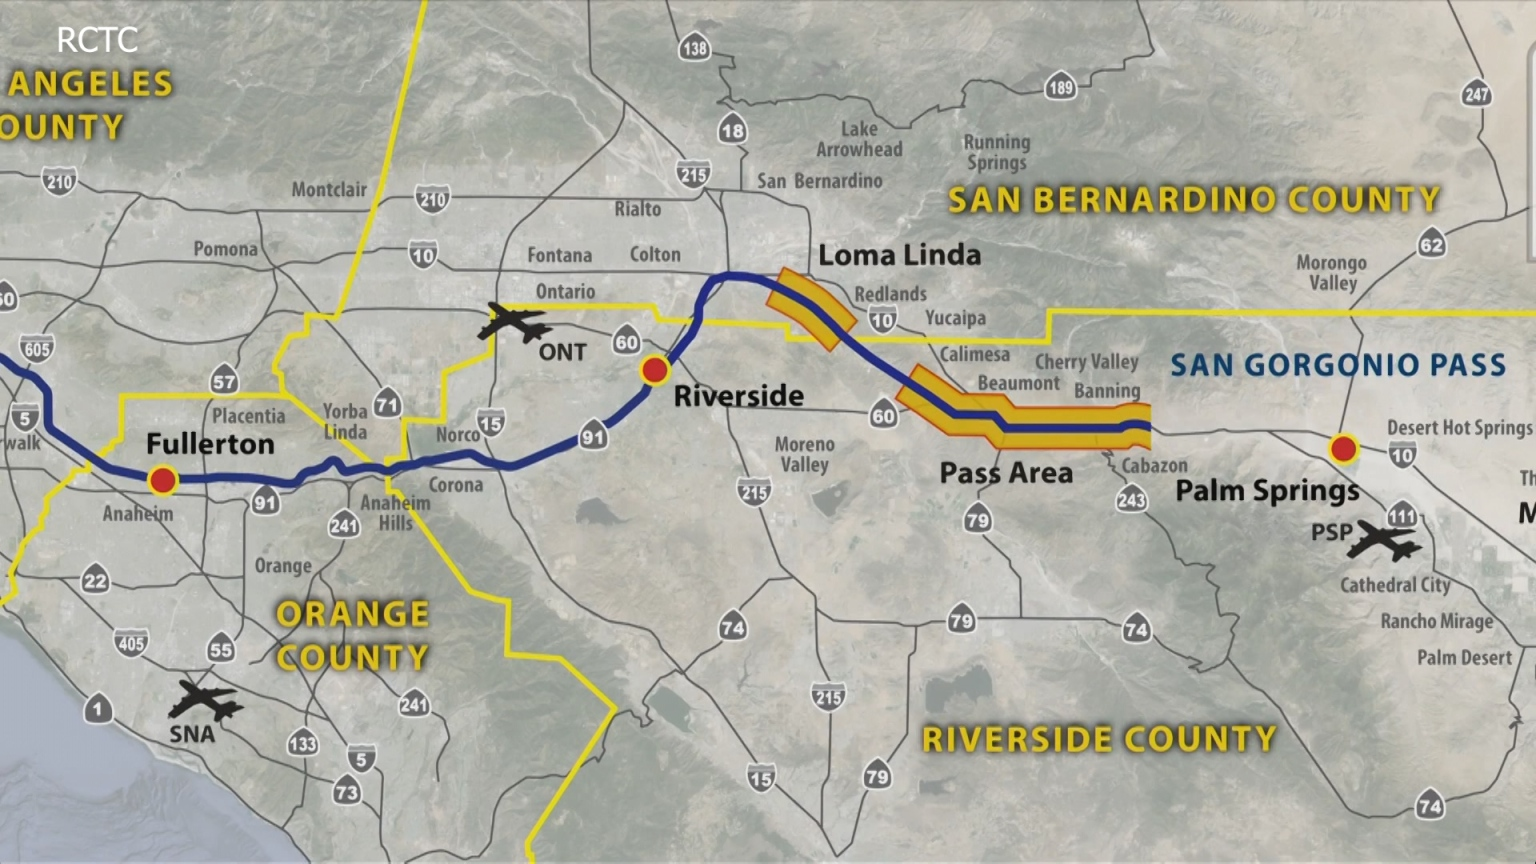 Coachella Valley Rail Project; Another Possible Option For Travel